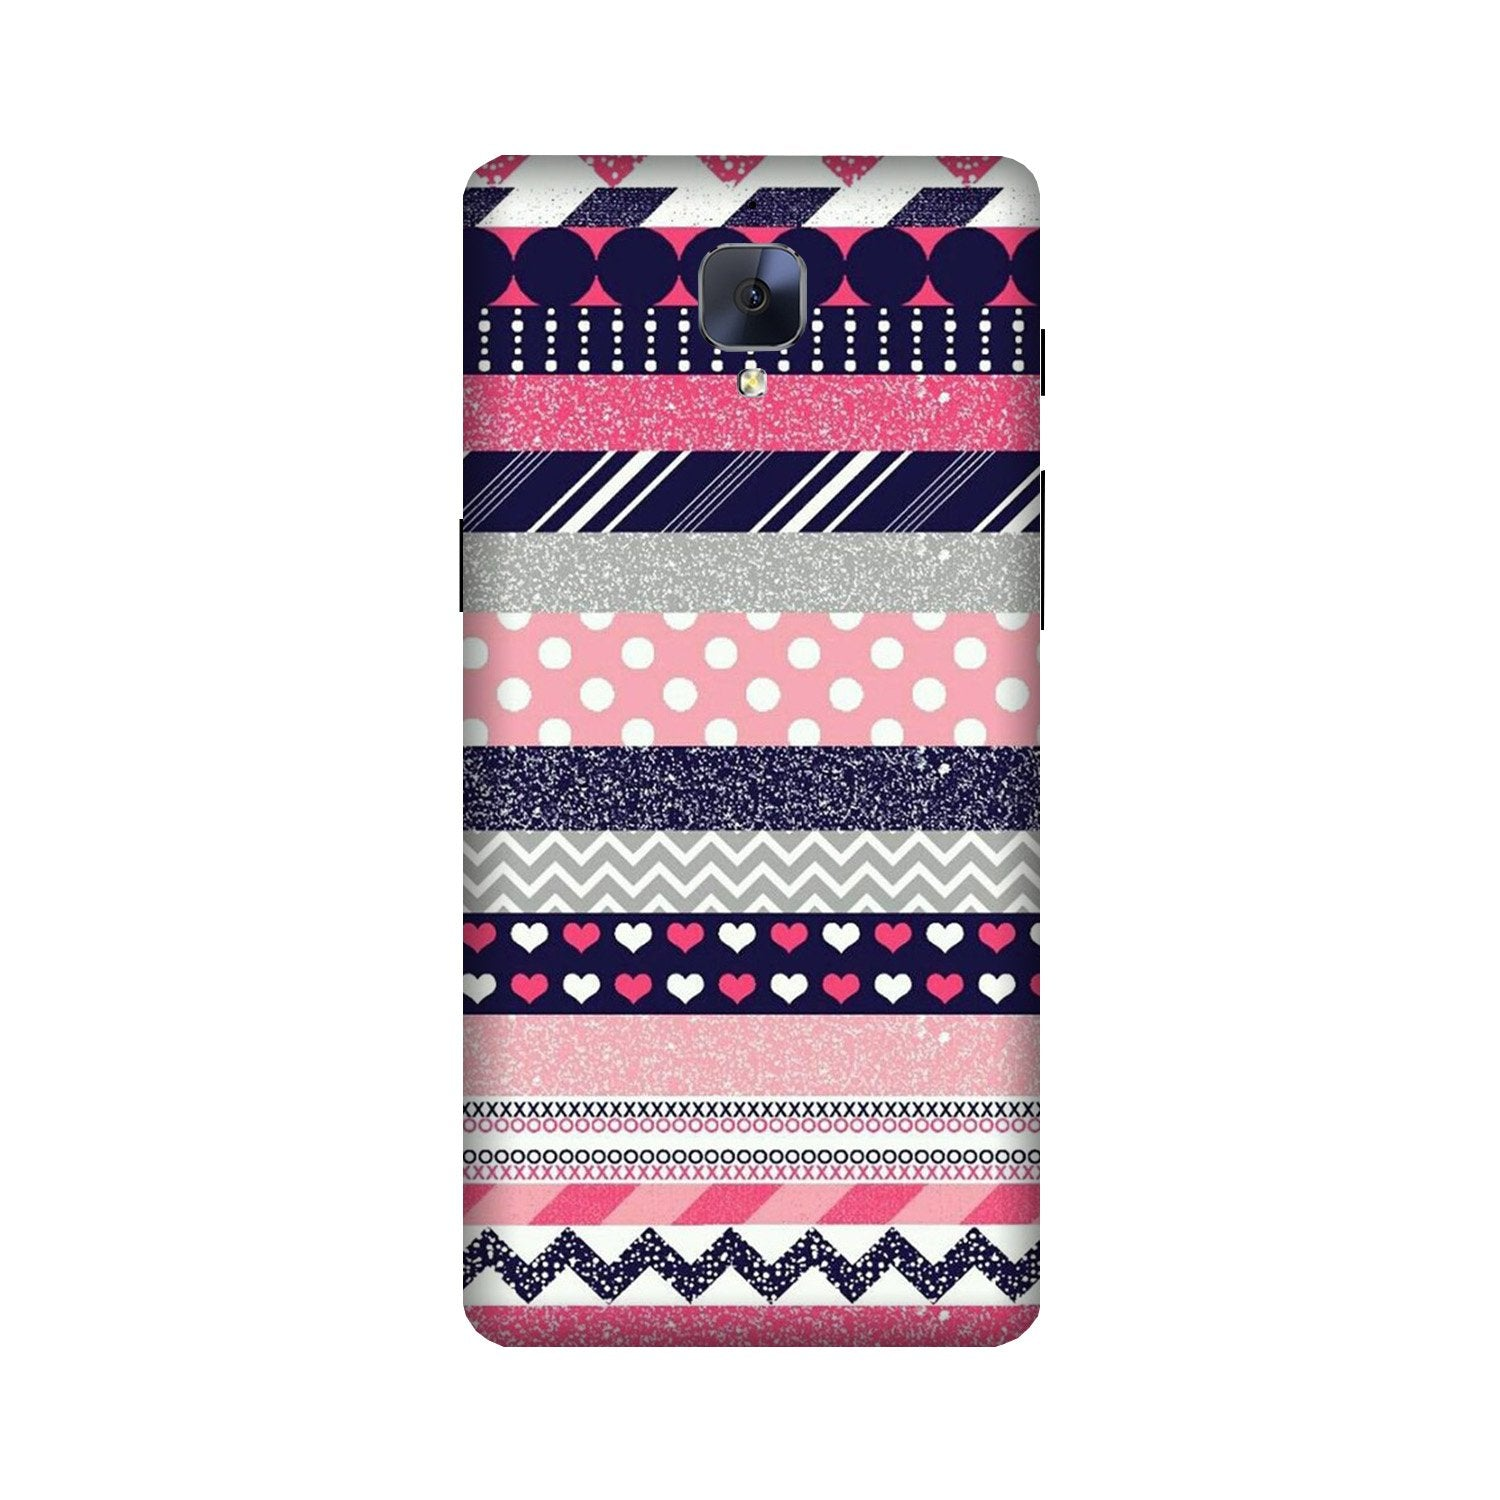 Pattern3 Case for OnePlus 3/ 3T